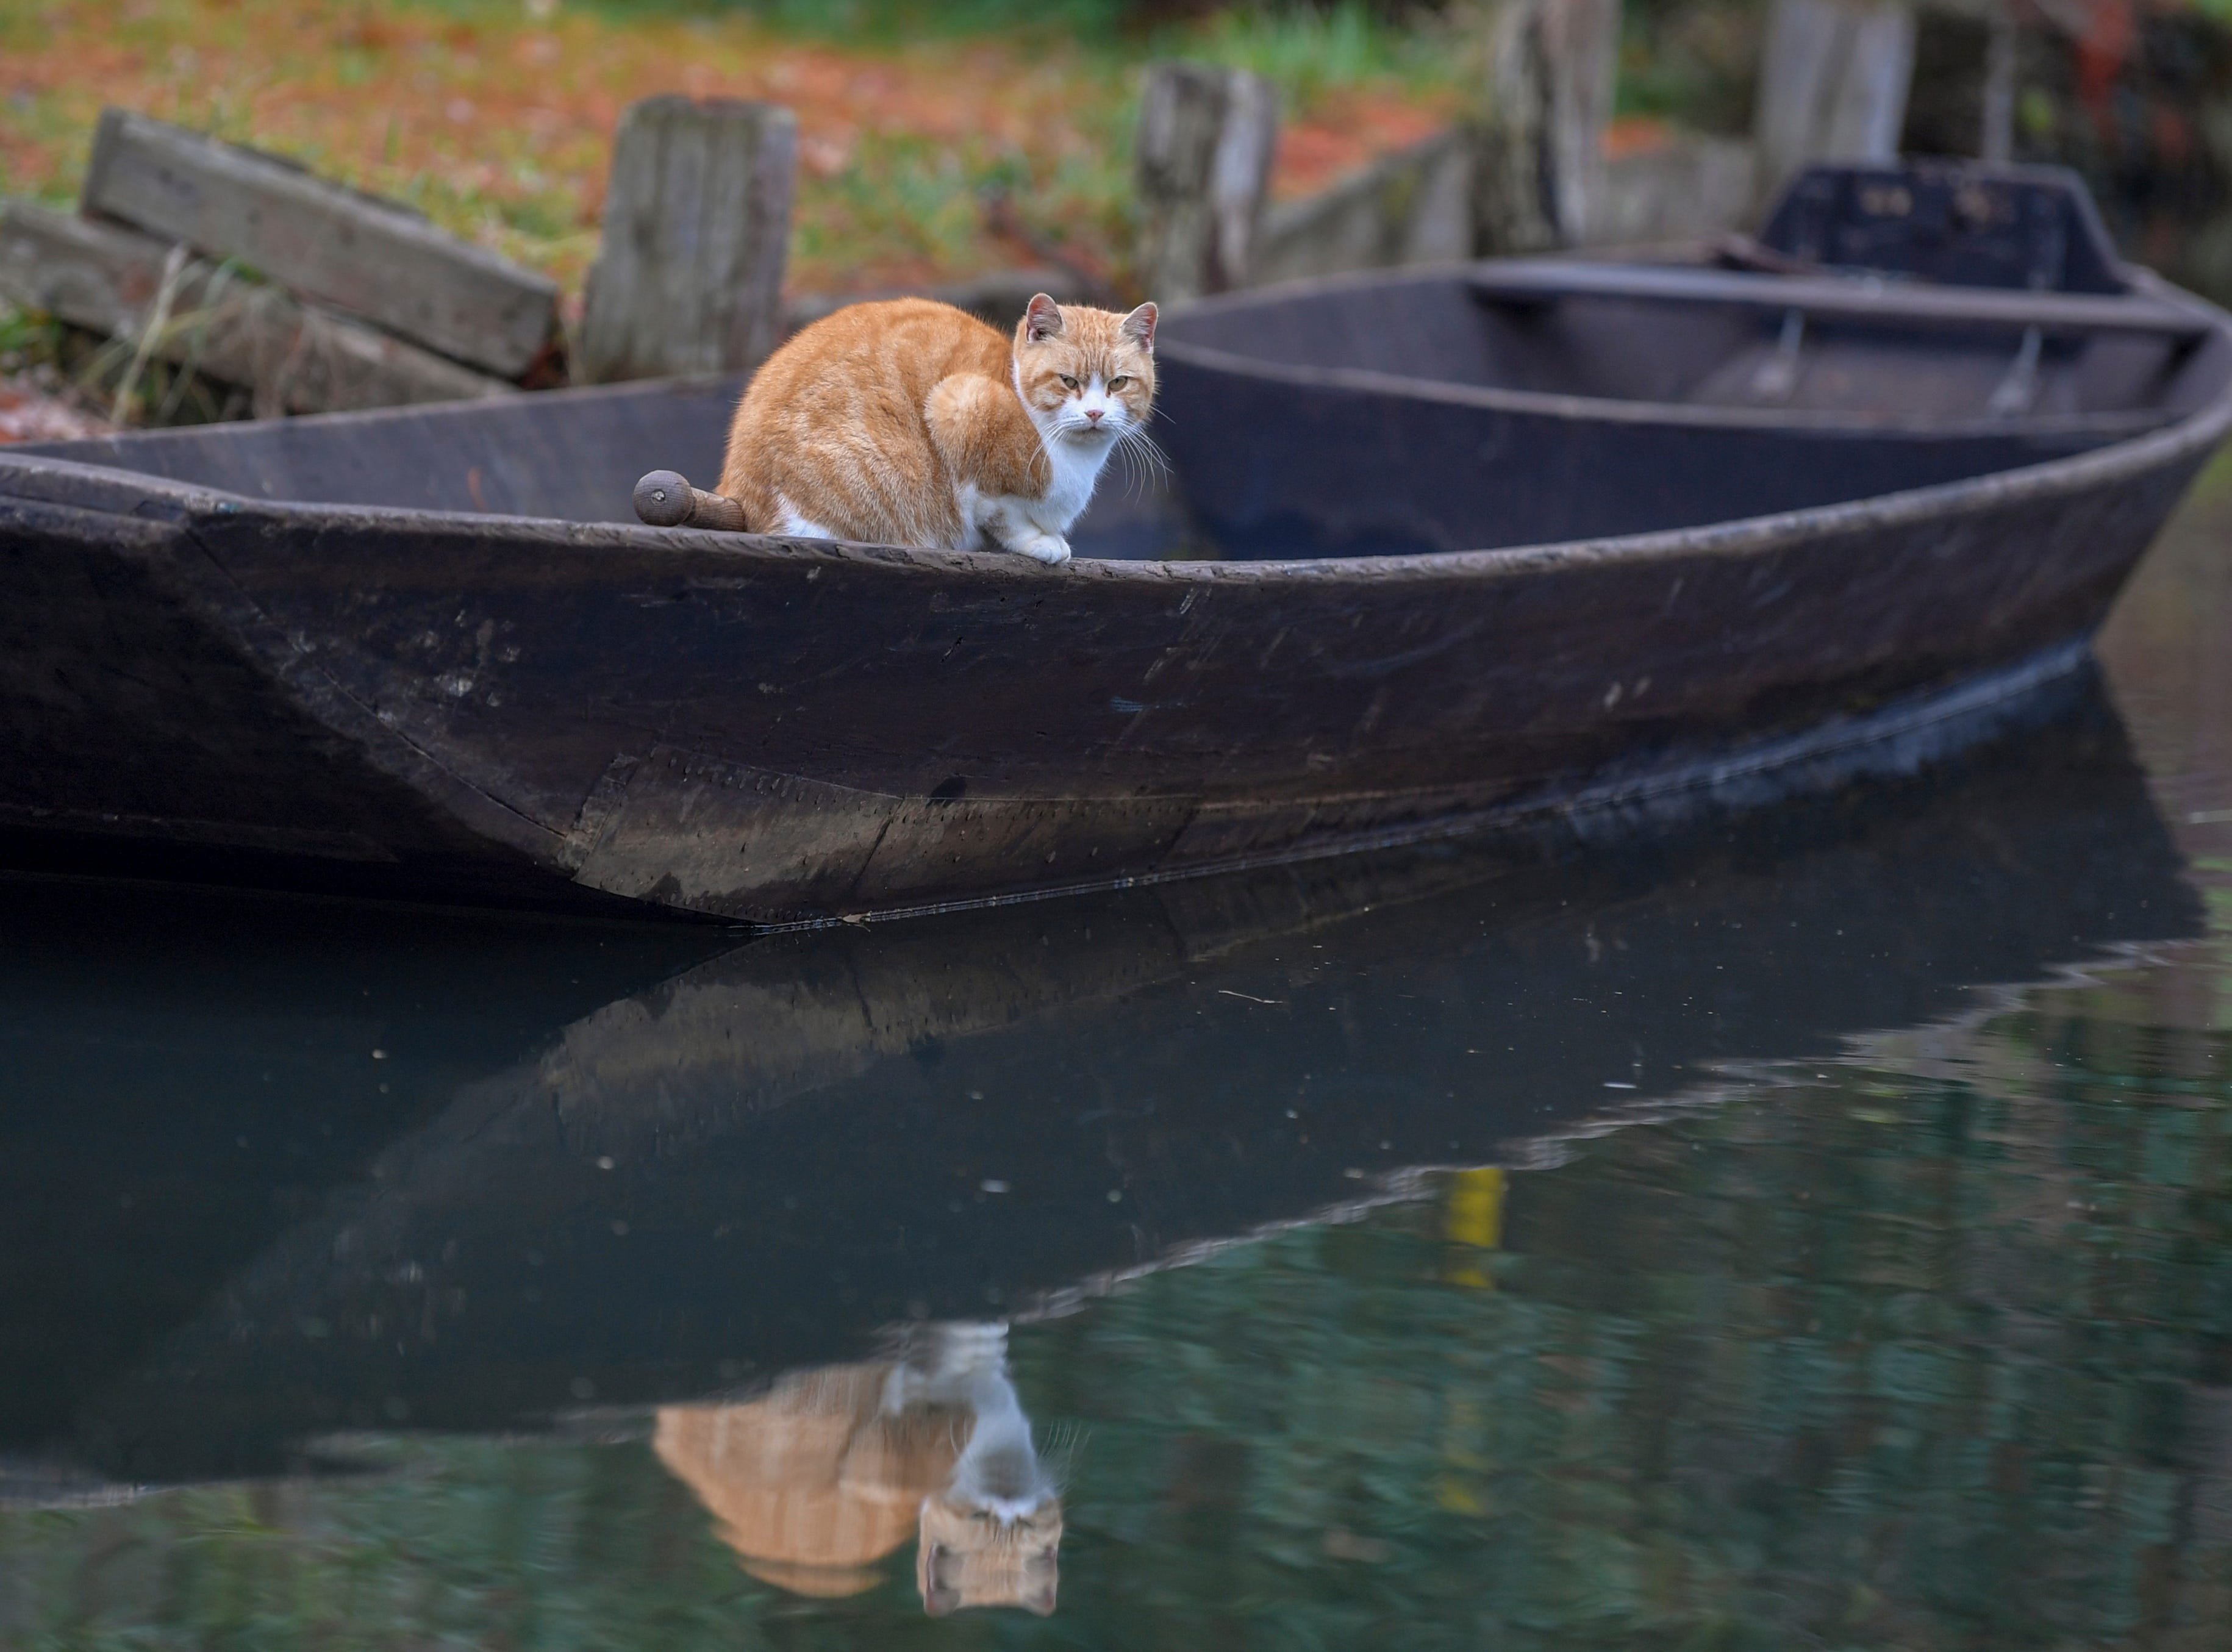 A cat is mirrored in the water as it sits on a boat in Lehde, Germany, Monday, Nov. 26, 2018.